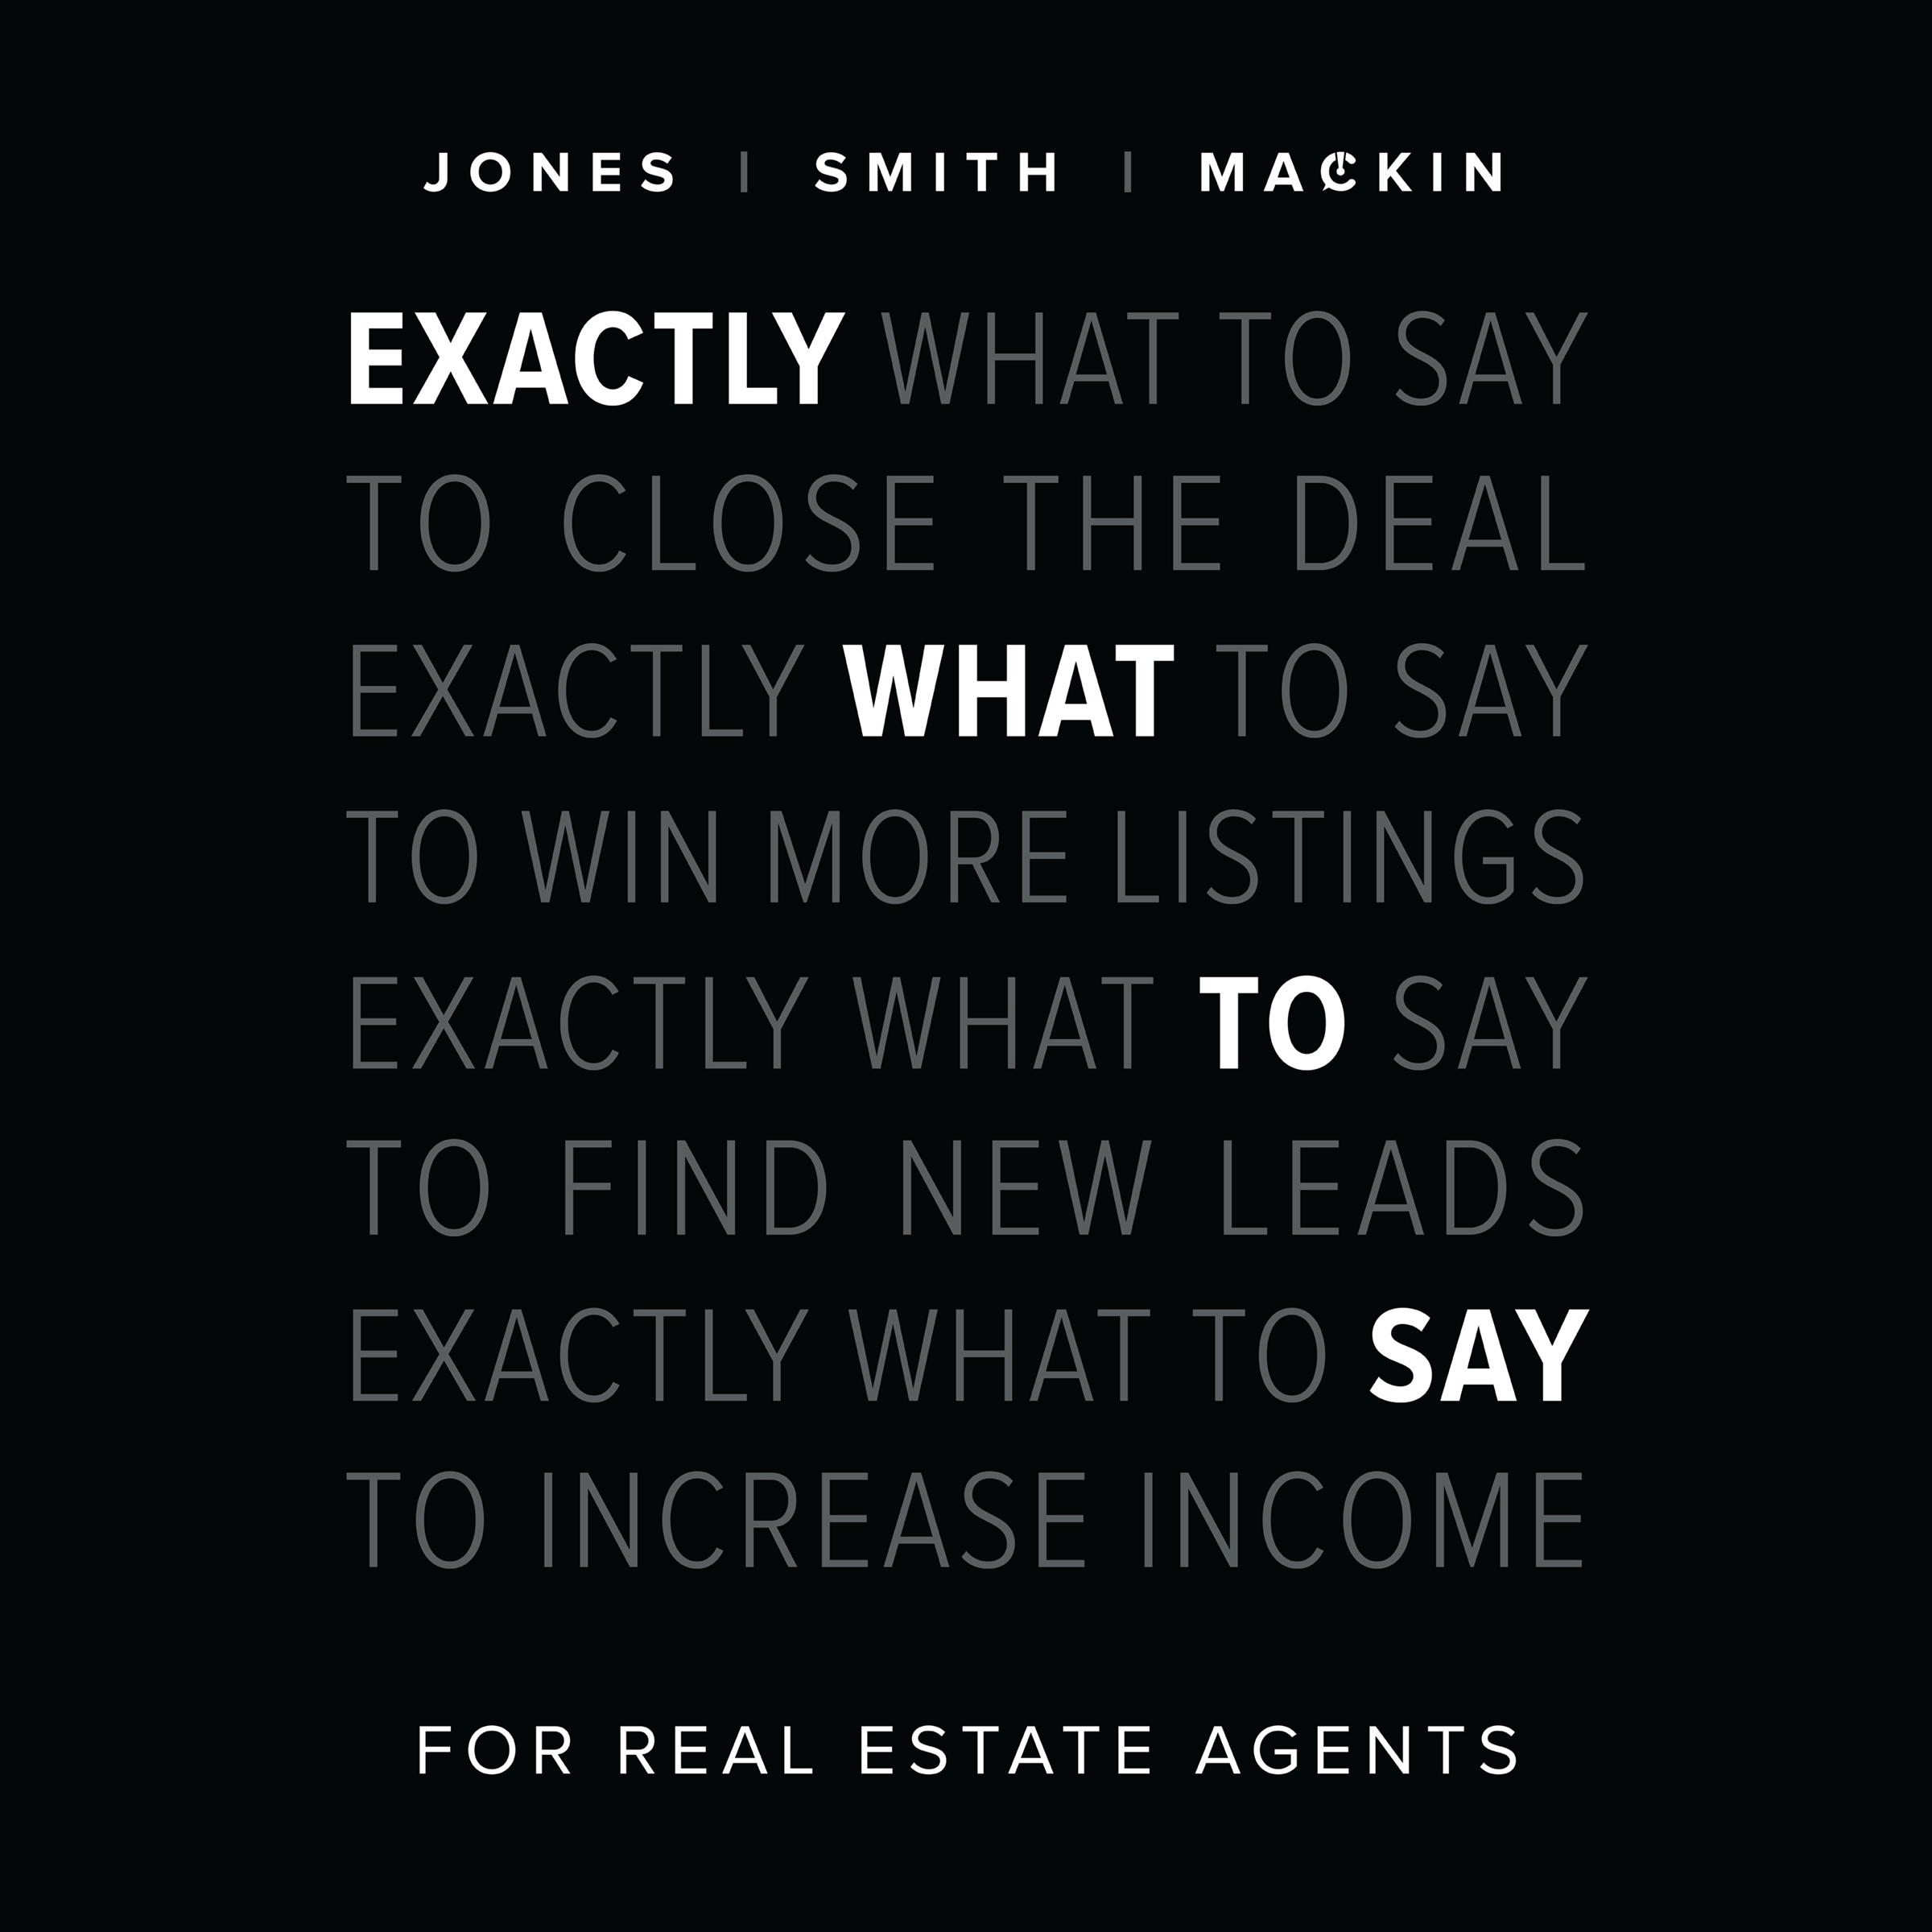 Exactly What to Say for Real Estate Agents